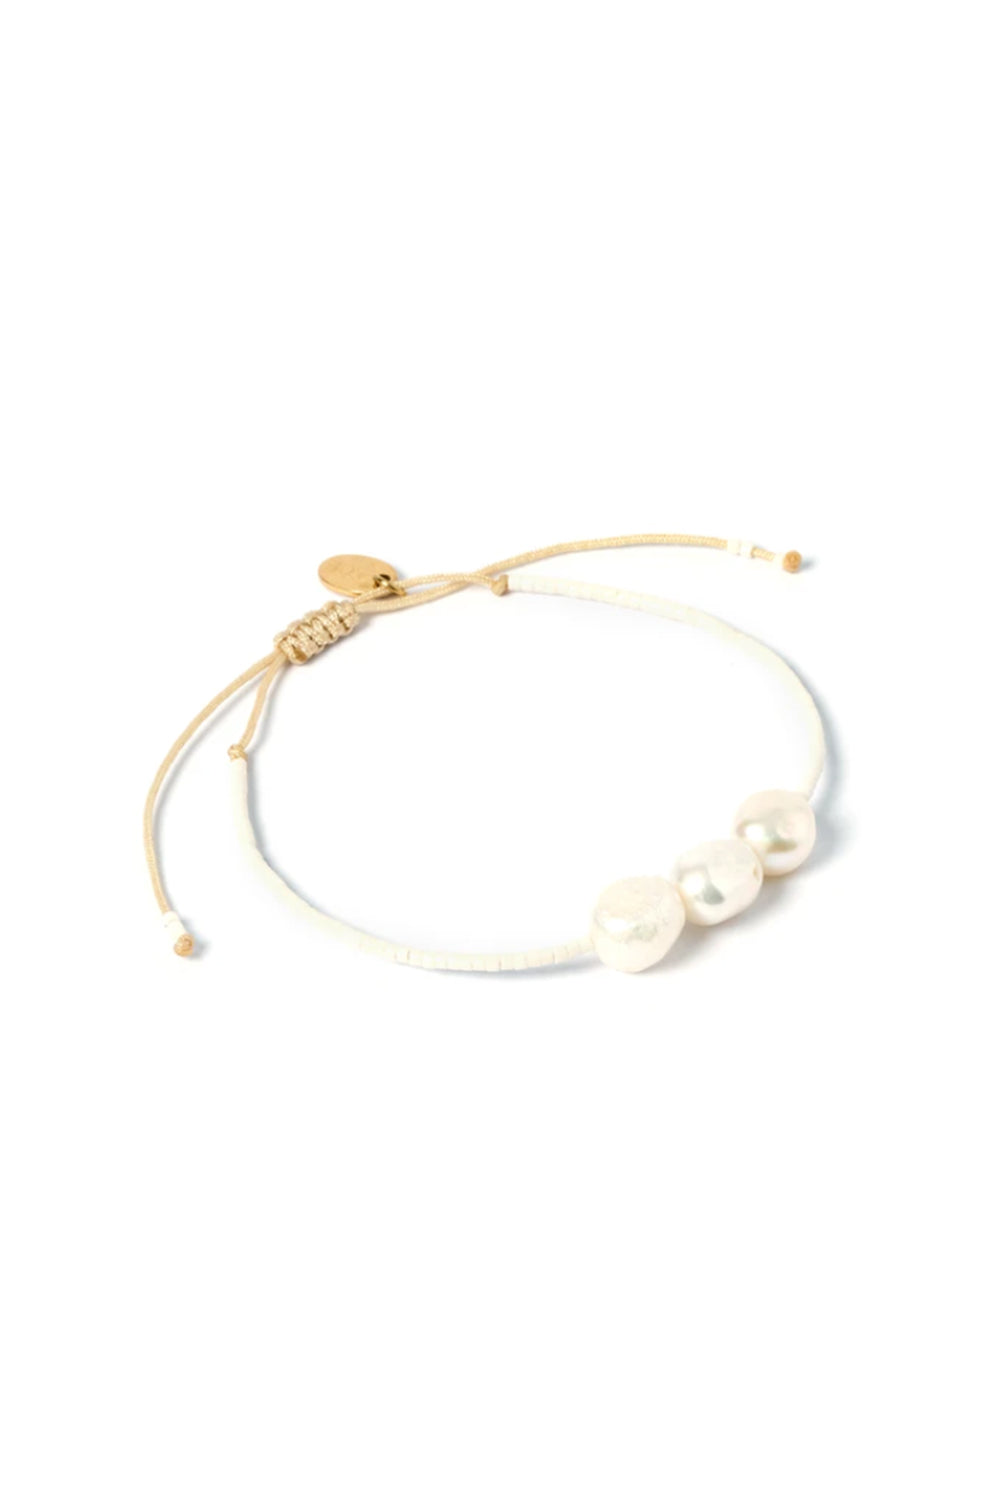 ARMS OF EVE - Serena Gold and Pearl Bracelet - White